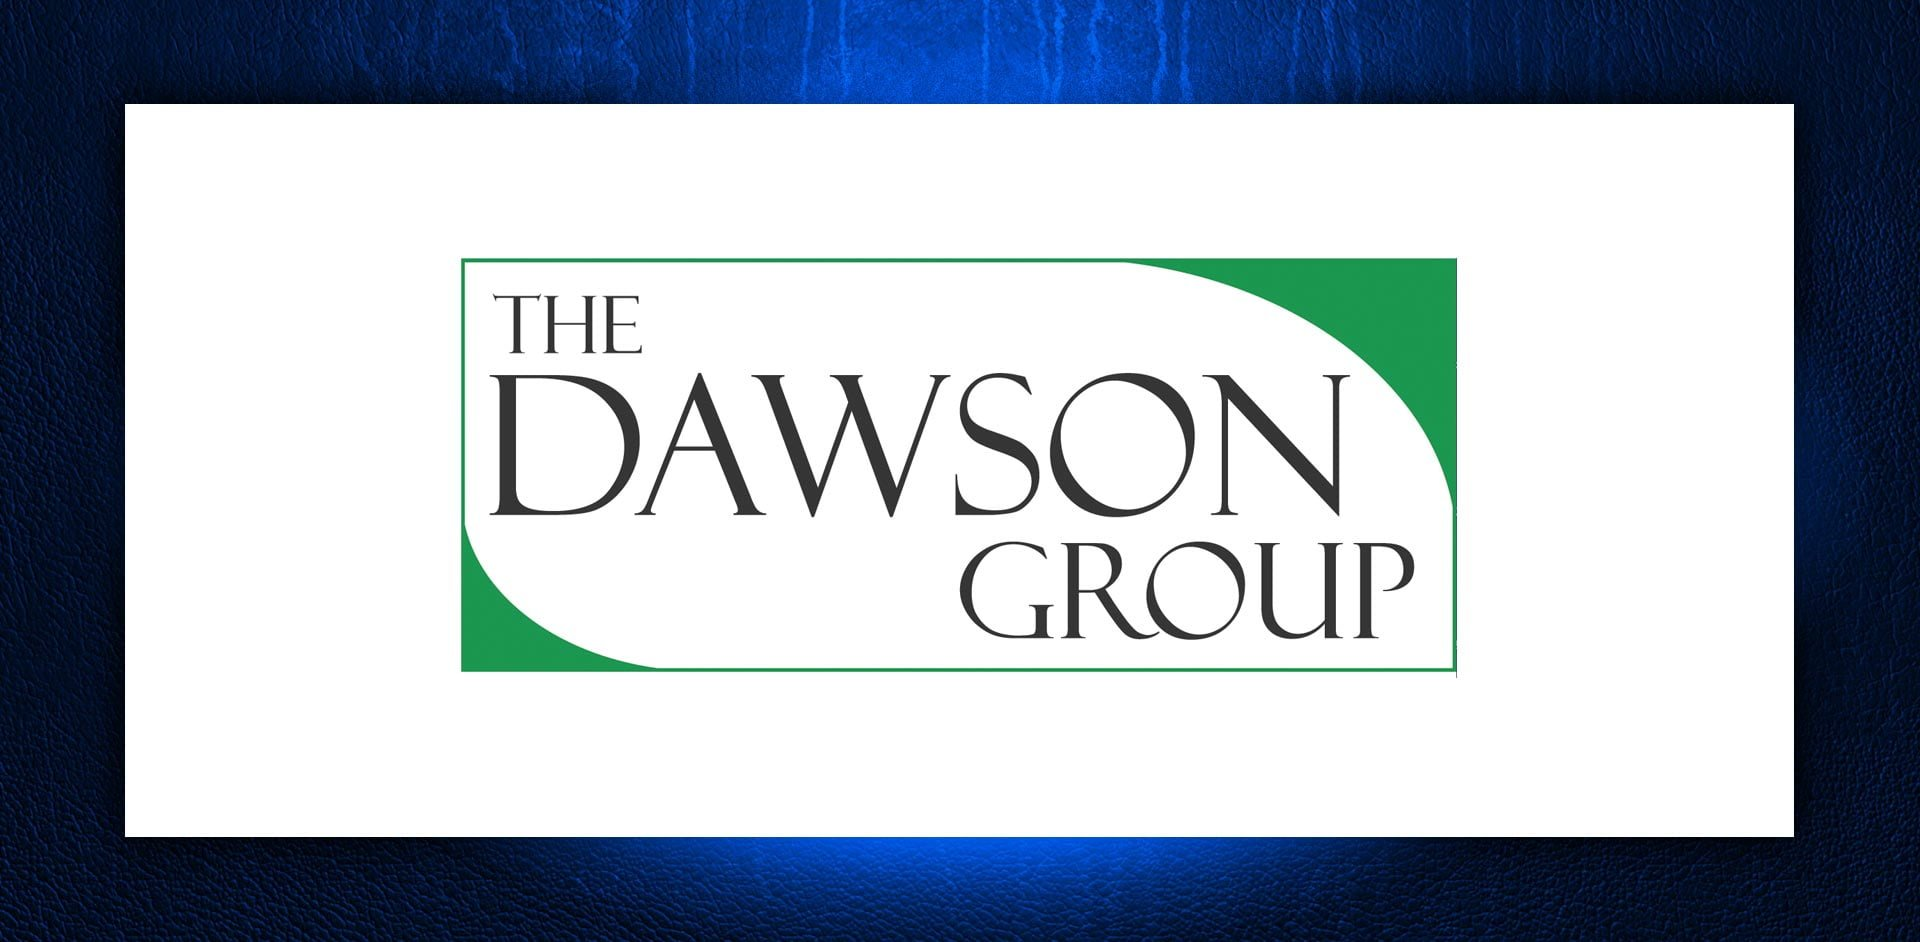 The Dawson Group